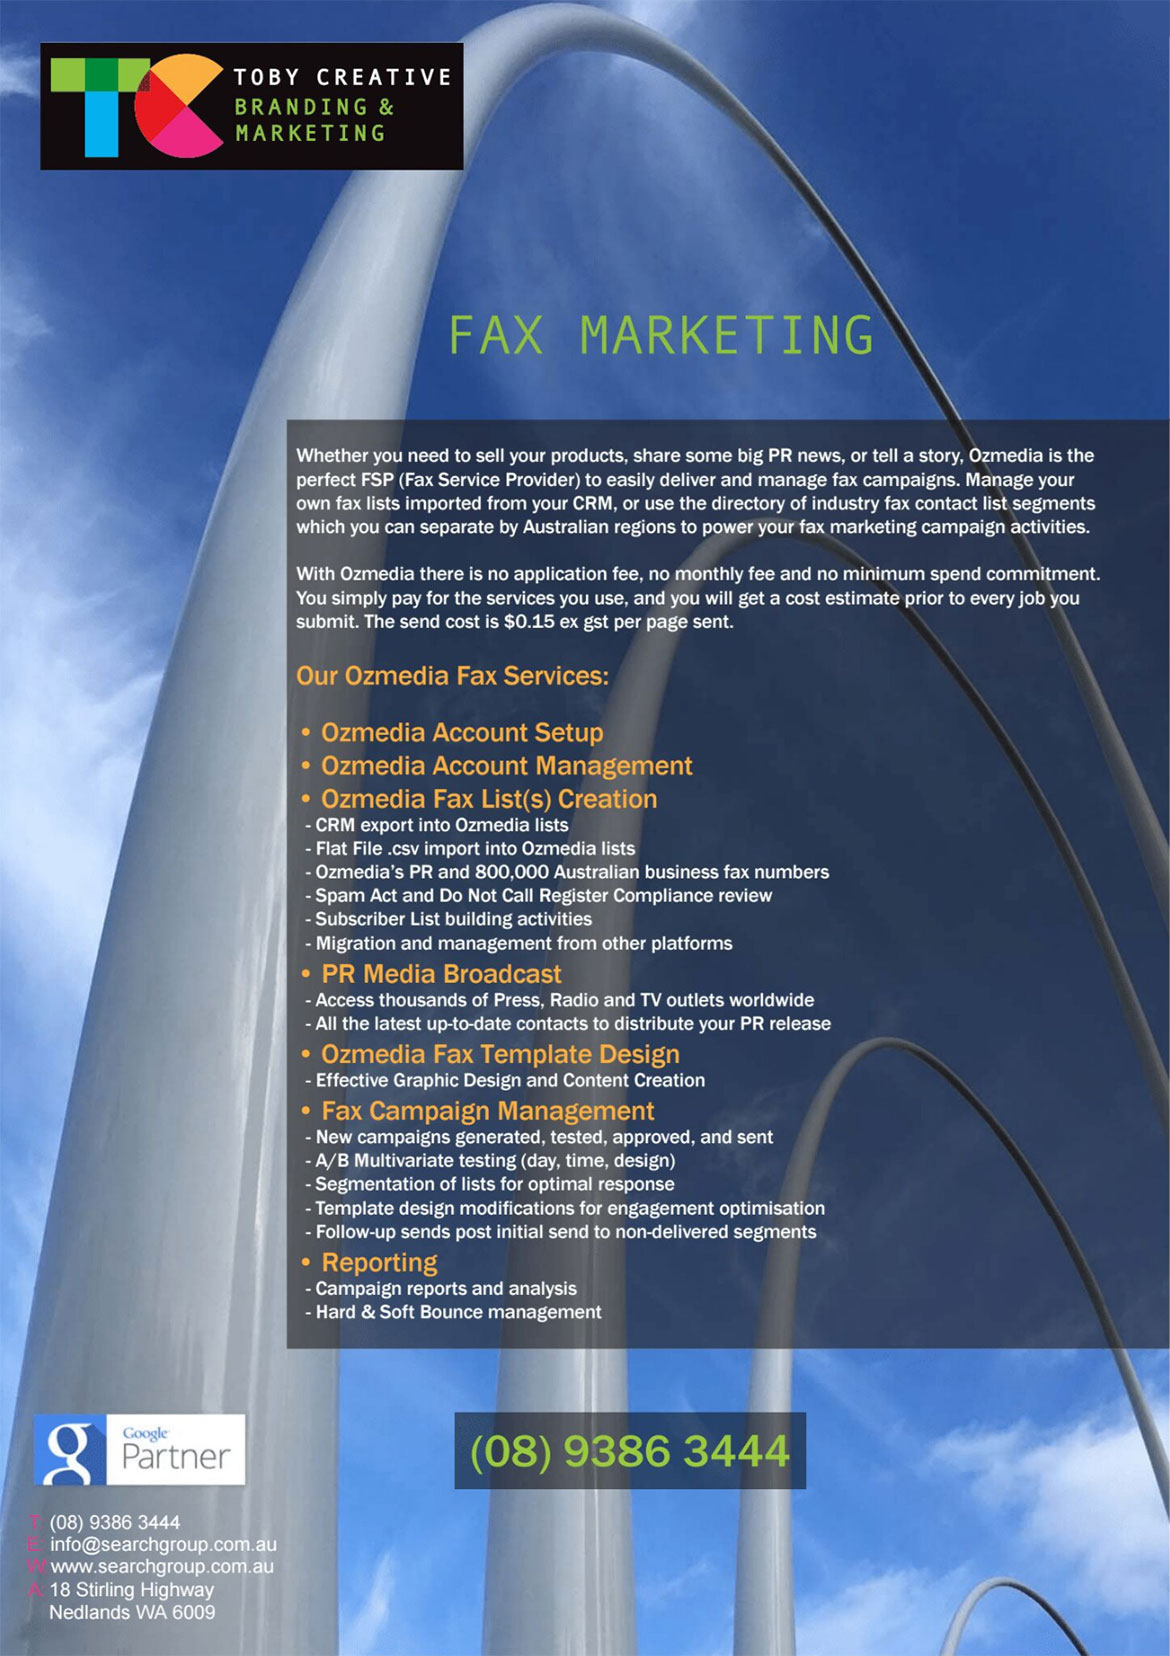 Toby Creative – Perth Fax Marketing OzMedia Fax Marketing Services